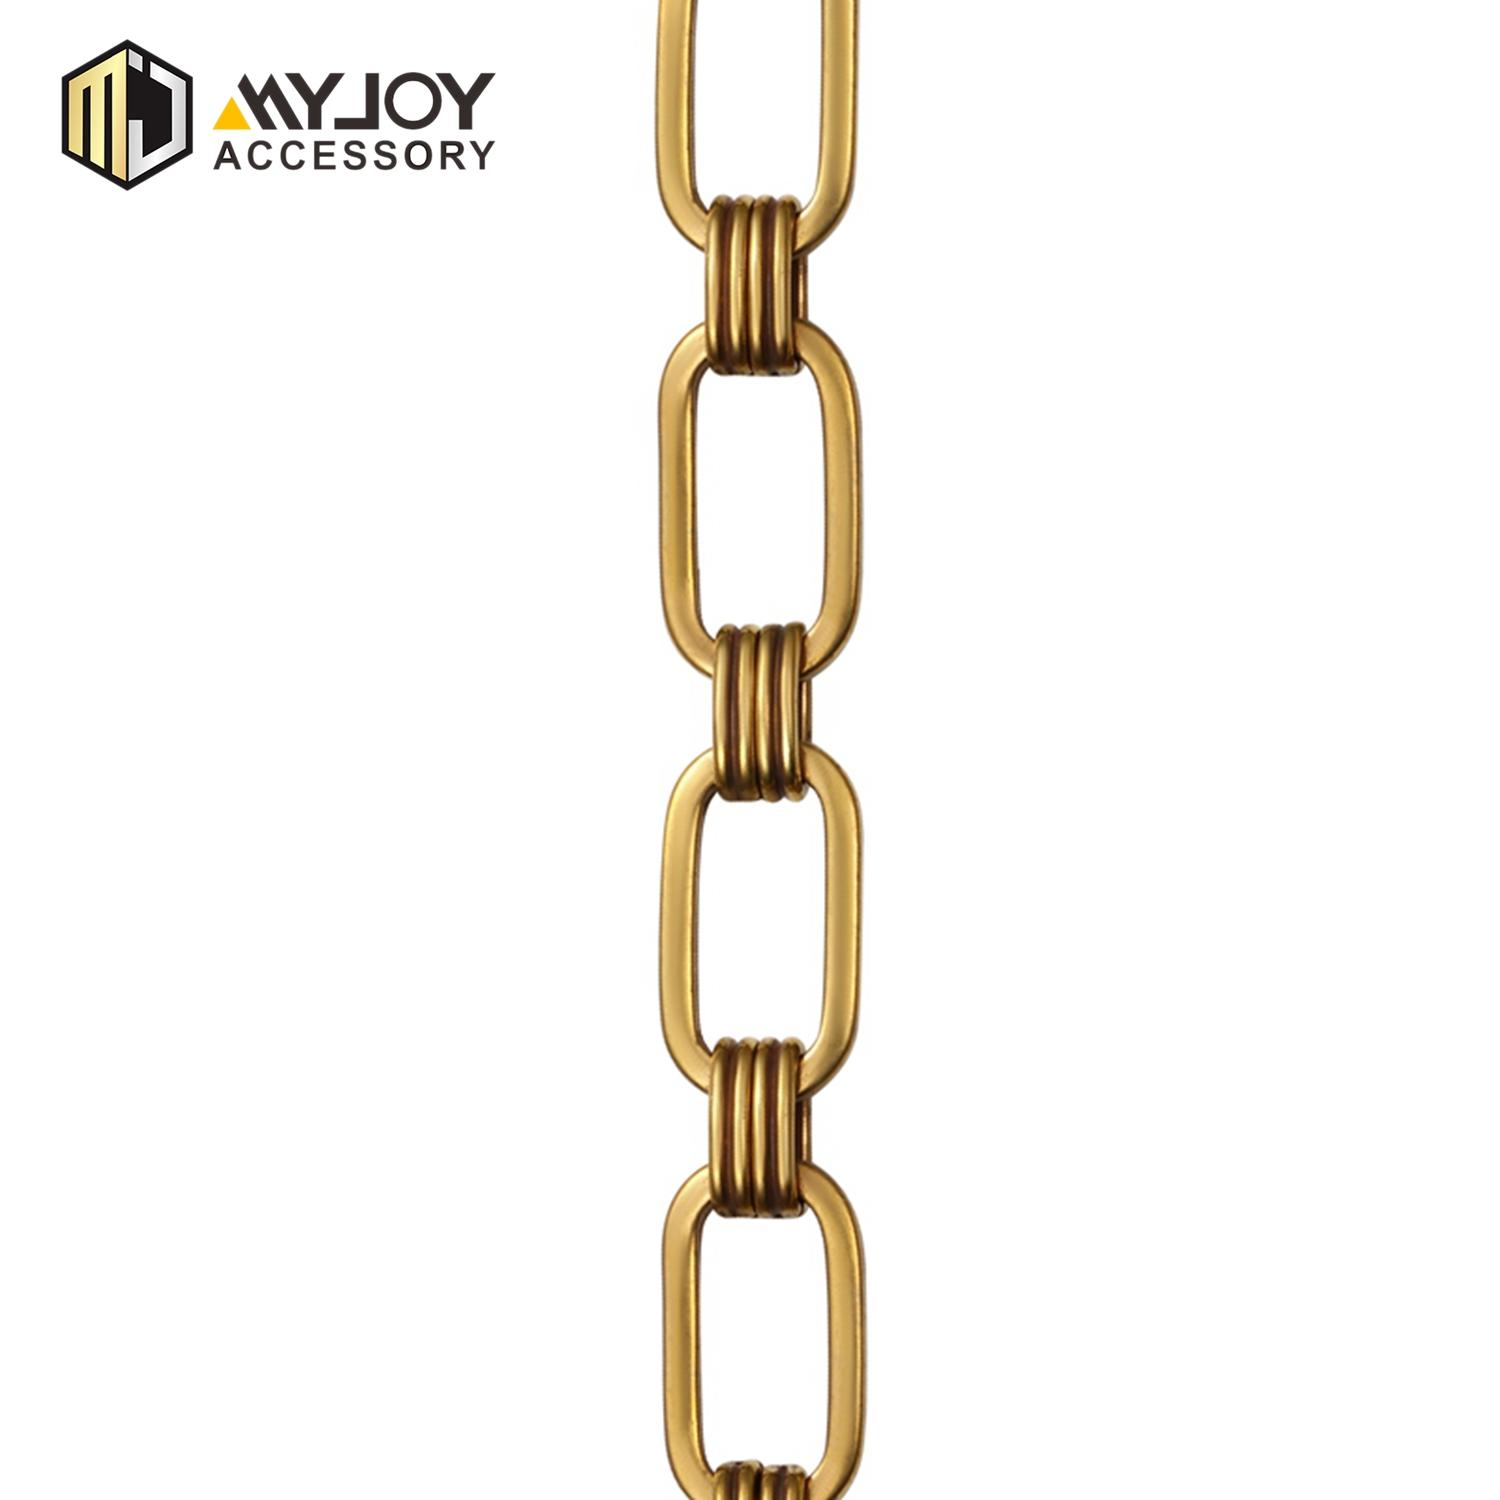 MYJOY High-quality chain strap supply for bags-1